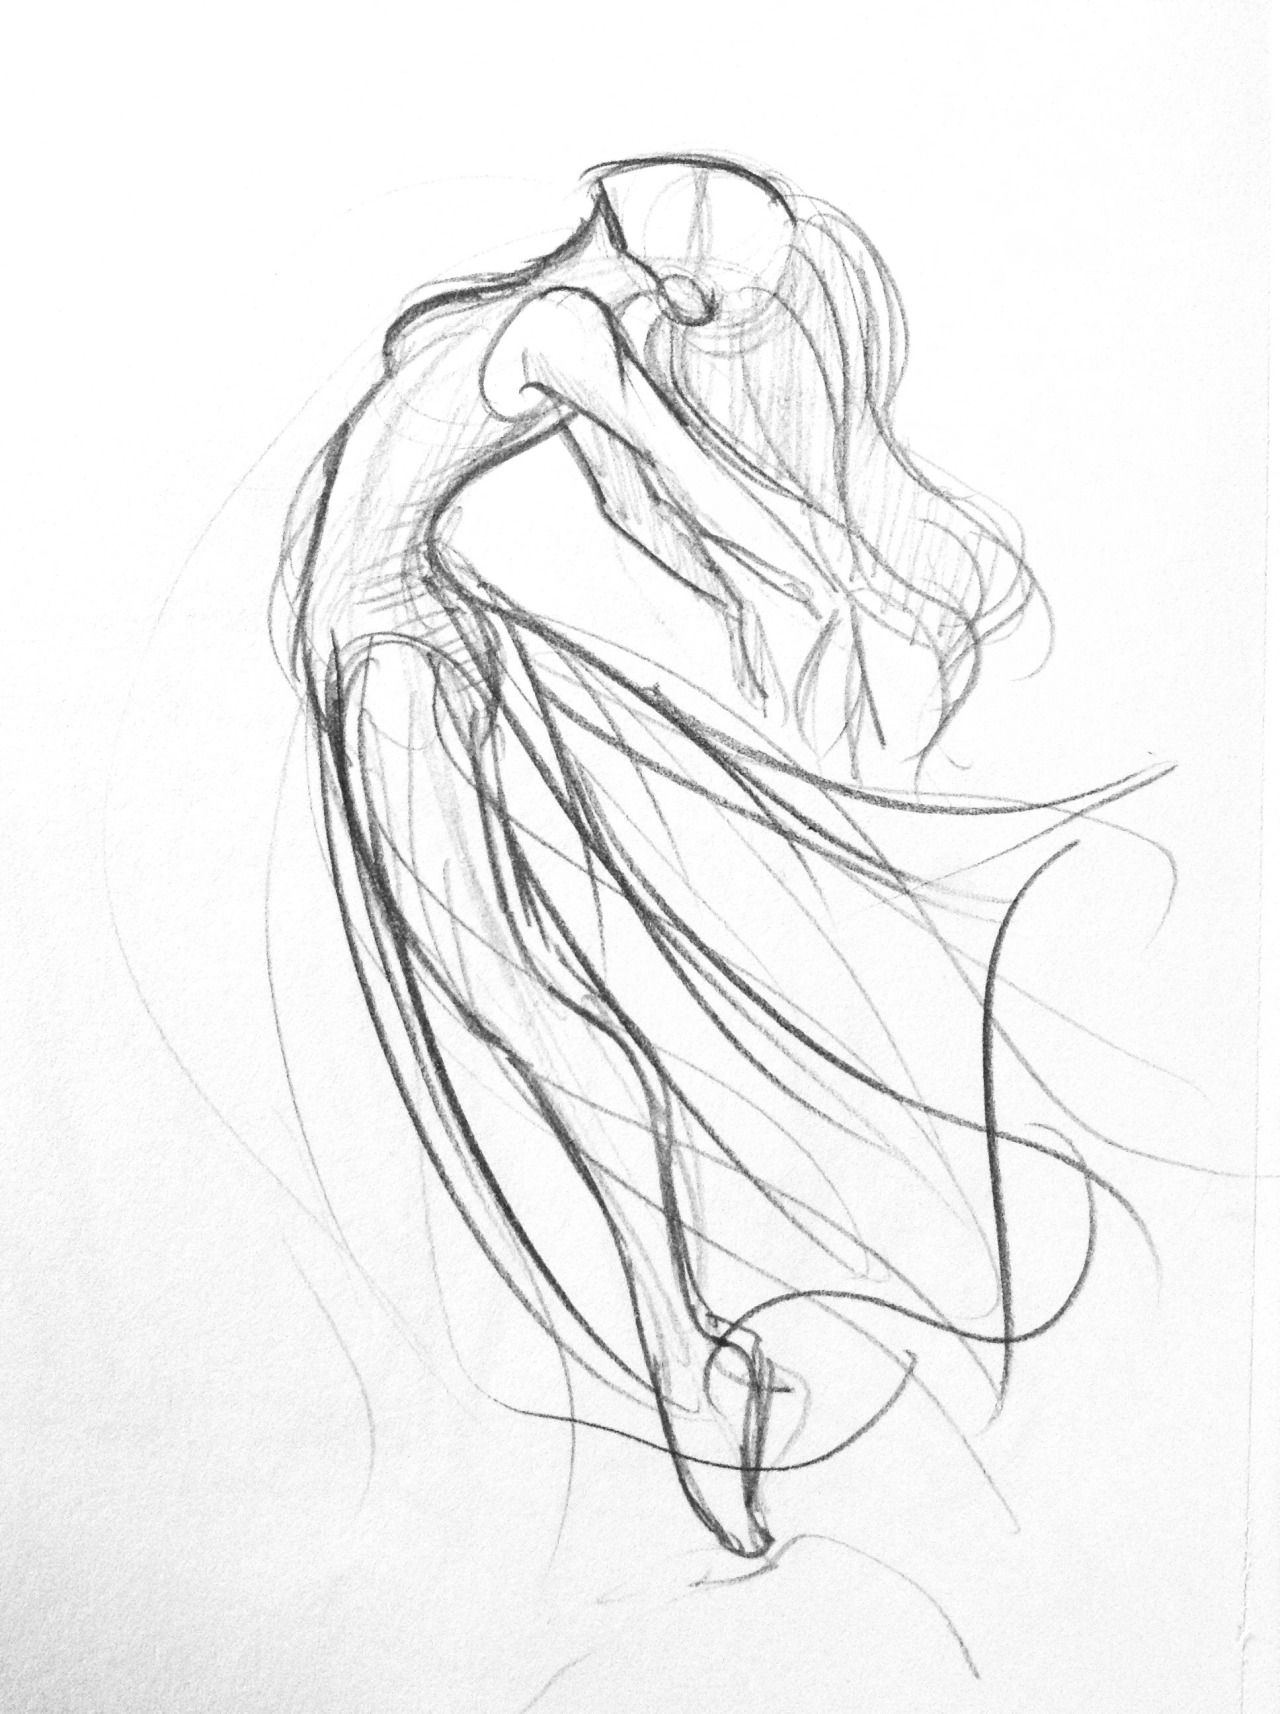 Some dancer sketches. For some I used some photo's from